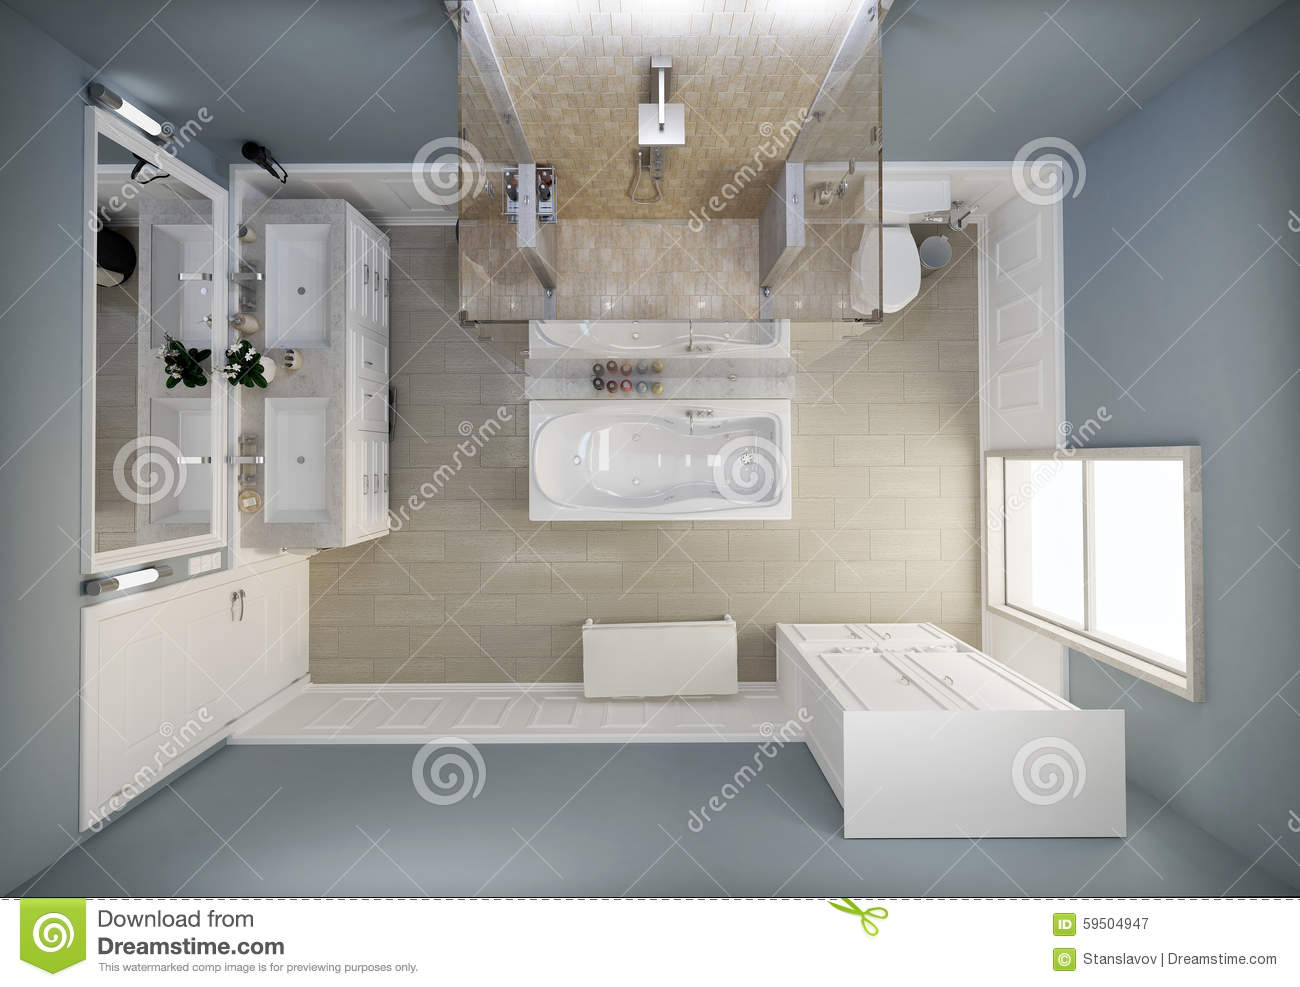 Bathroom Top View Stock Image Of Interior Basket